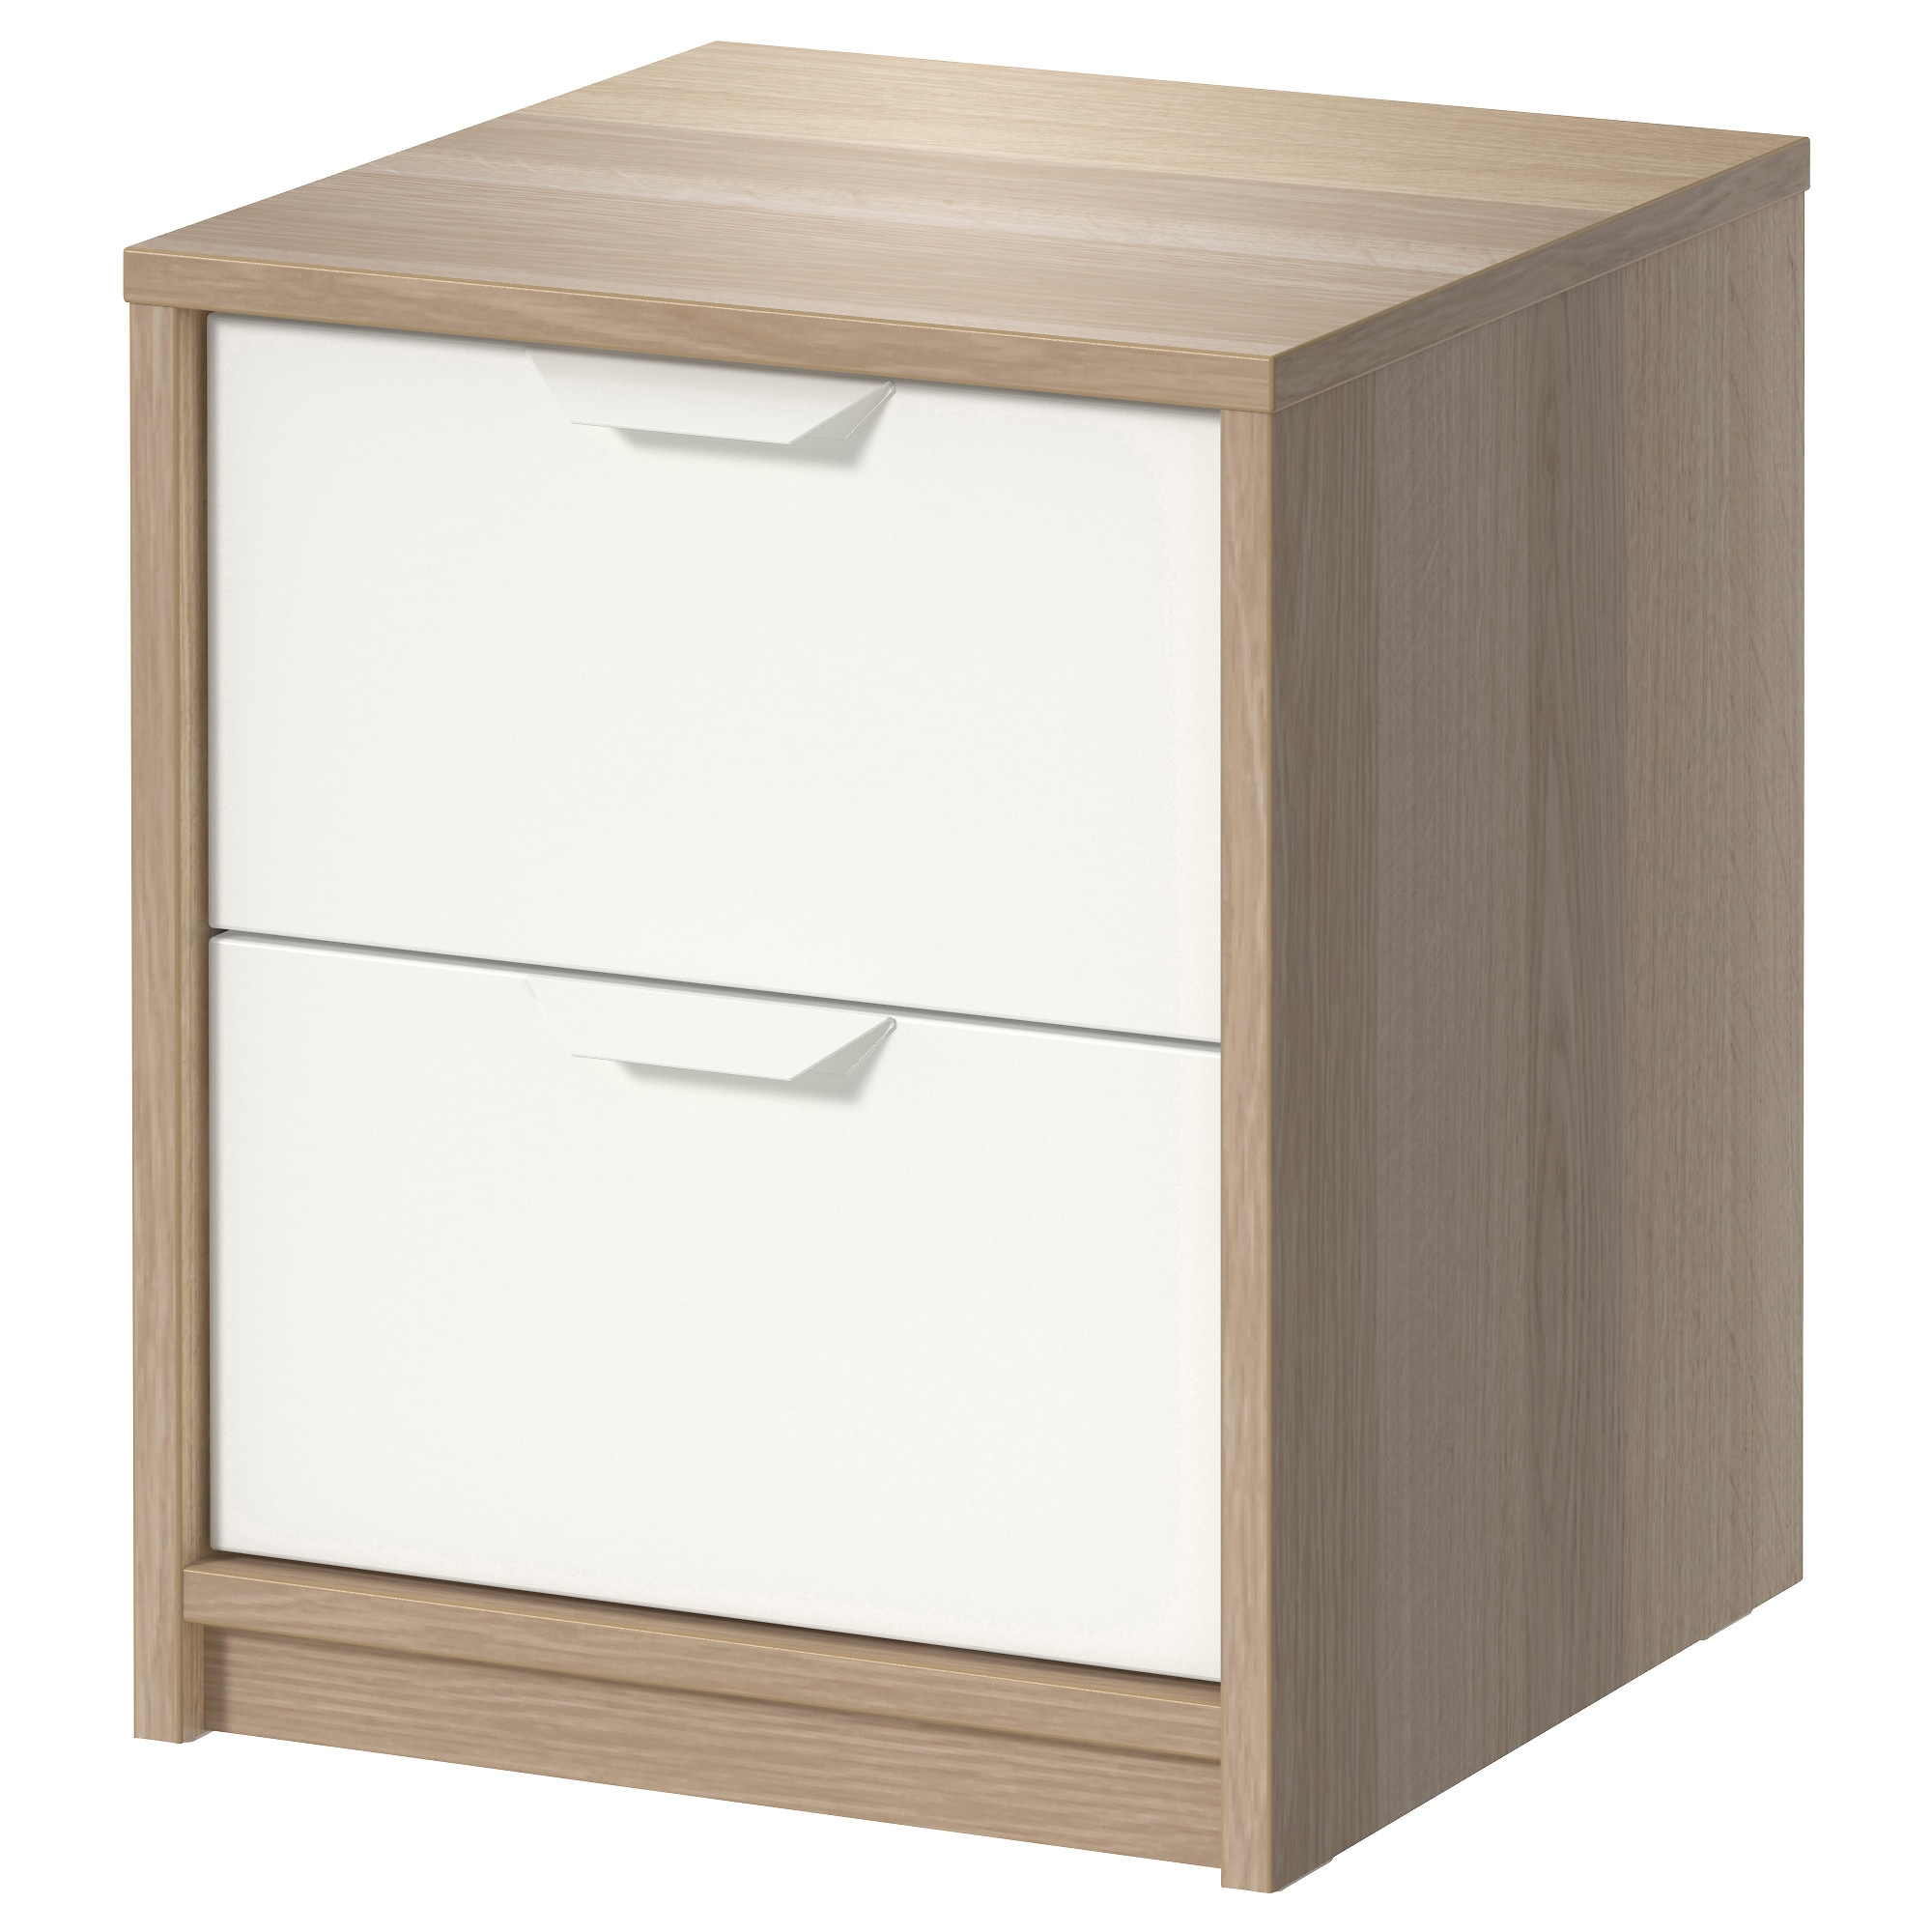 Ikea bedroom furniture chest of drawers - Inter Ikea Systems B V 1999 2016 Privacy Policy